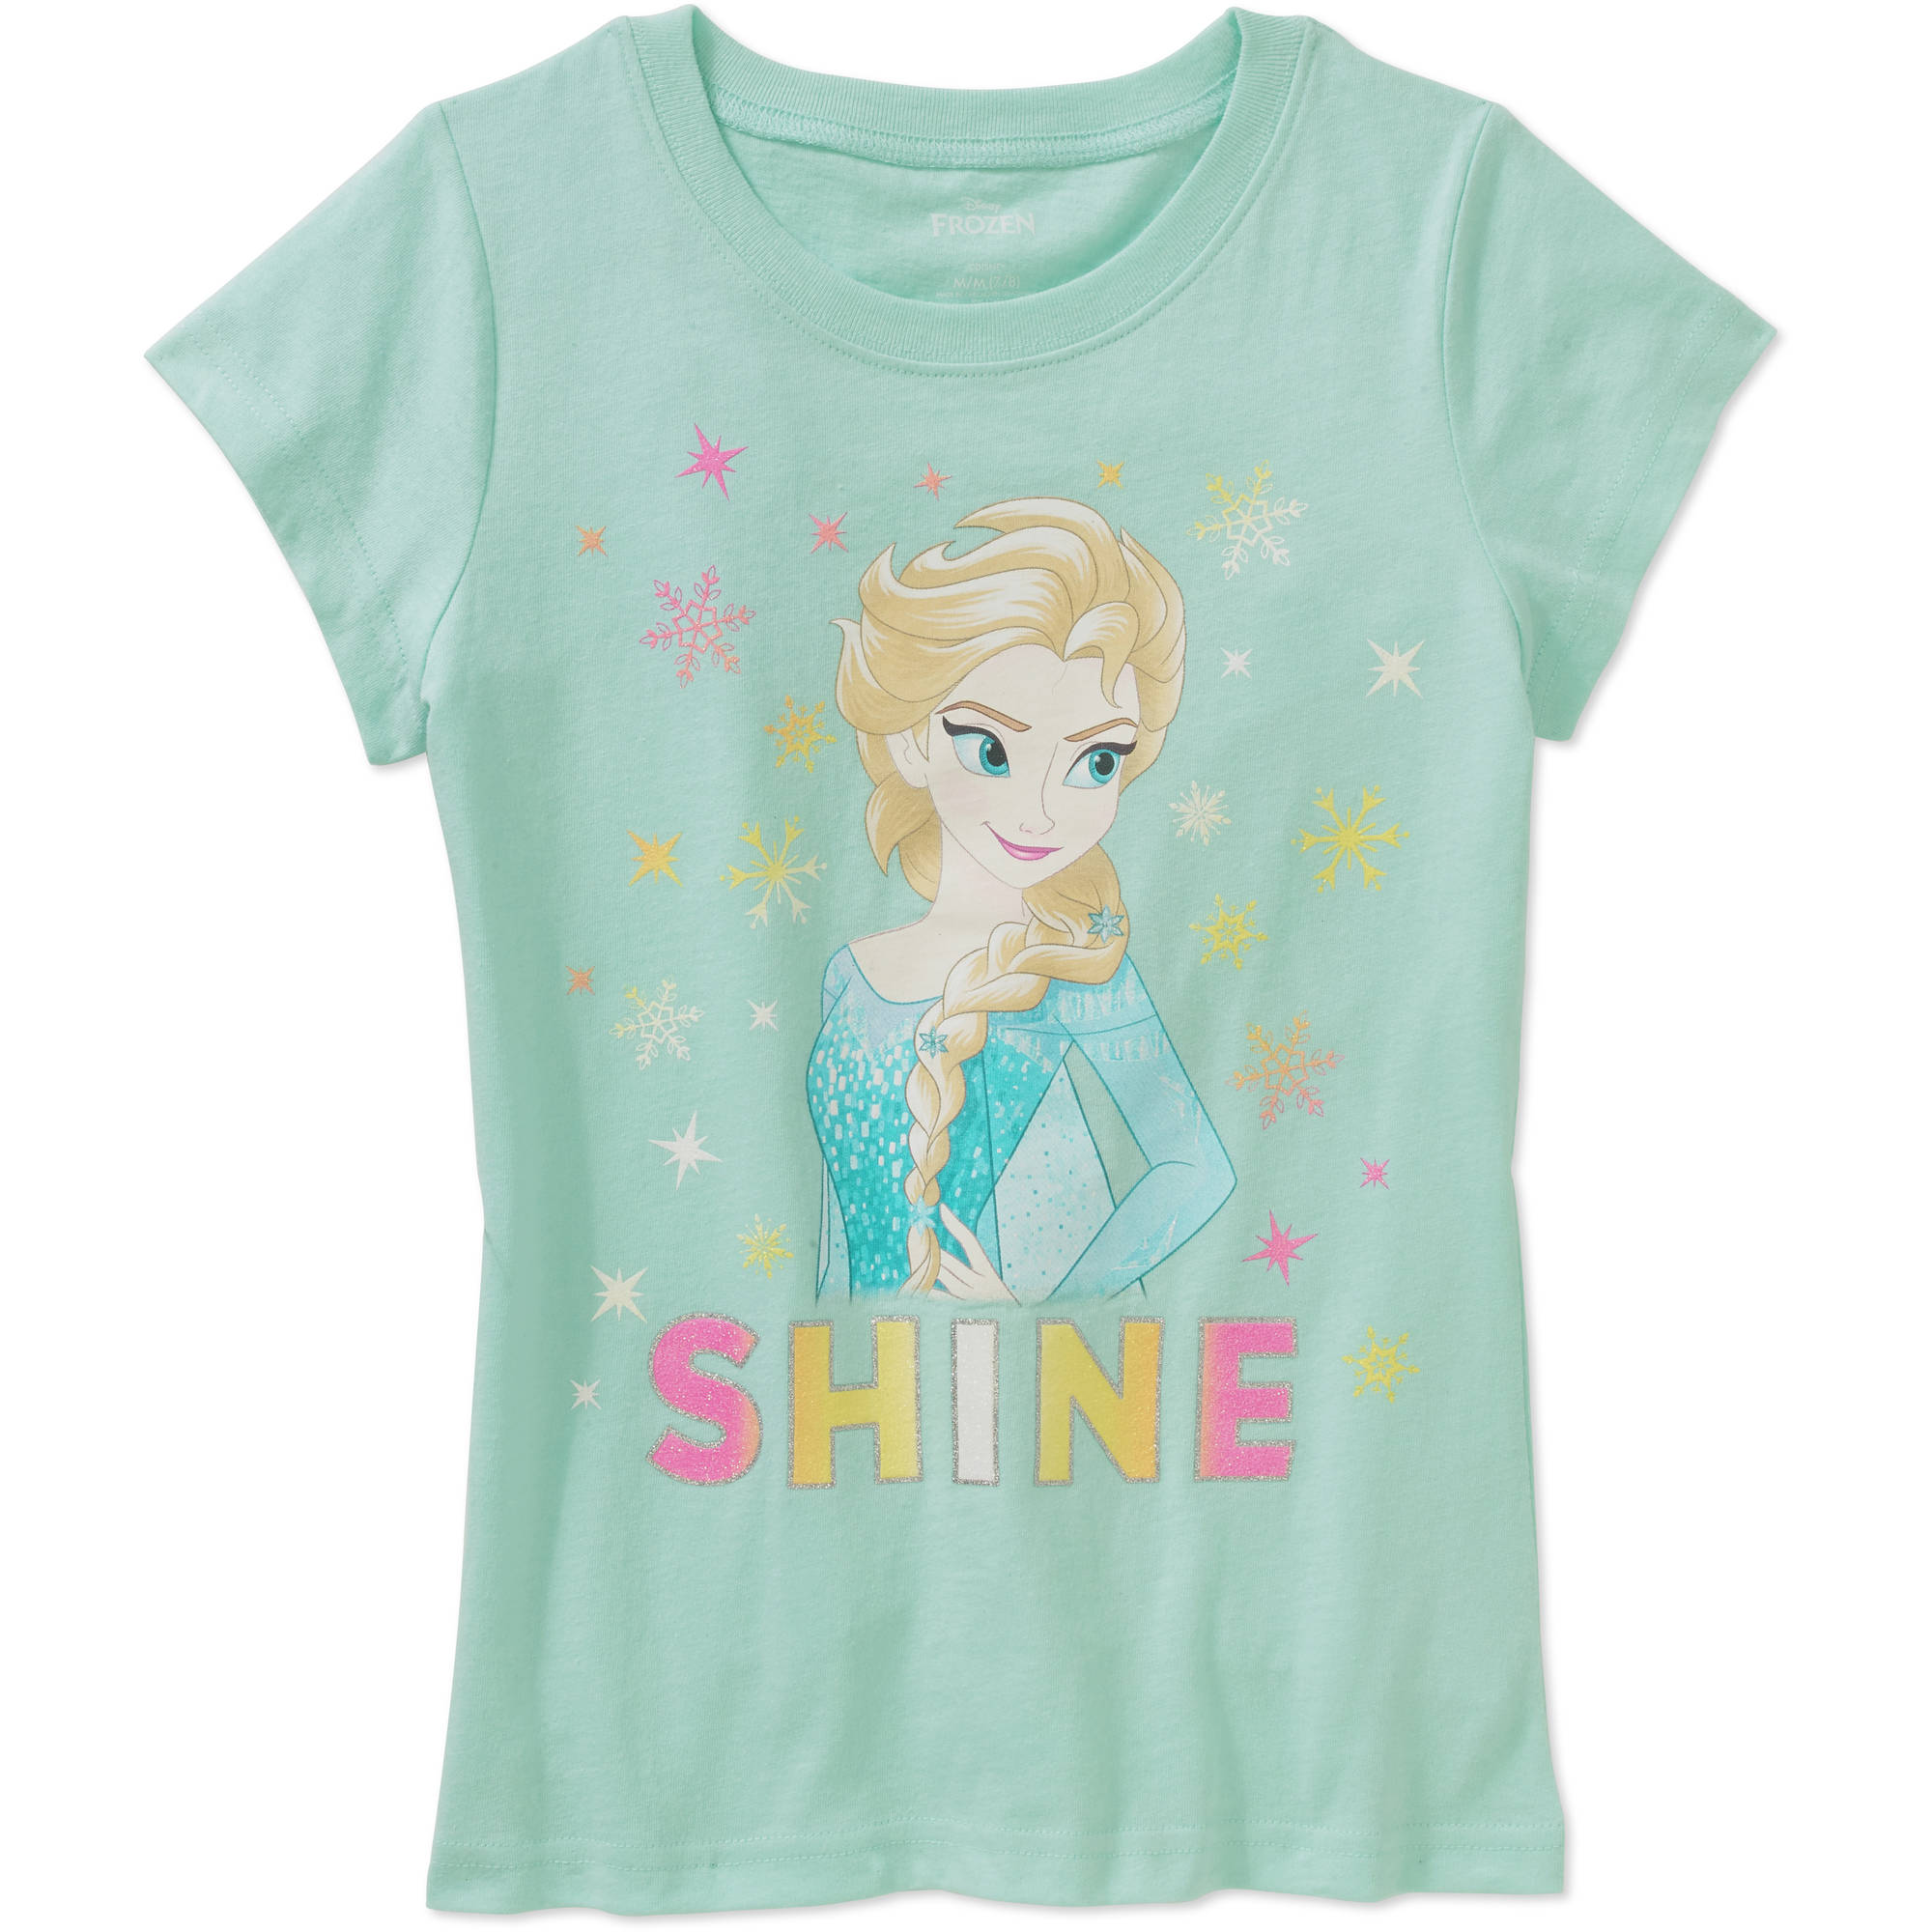 Disney Frozen Girls' Licensed Elsa Shine Short Sleeve Graphic T-Shirt